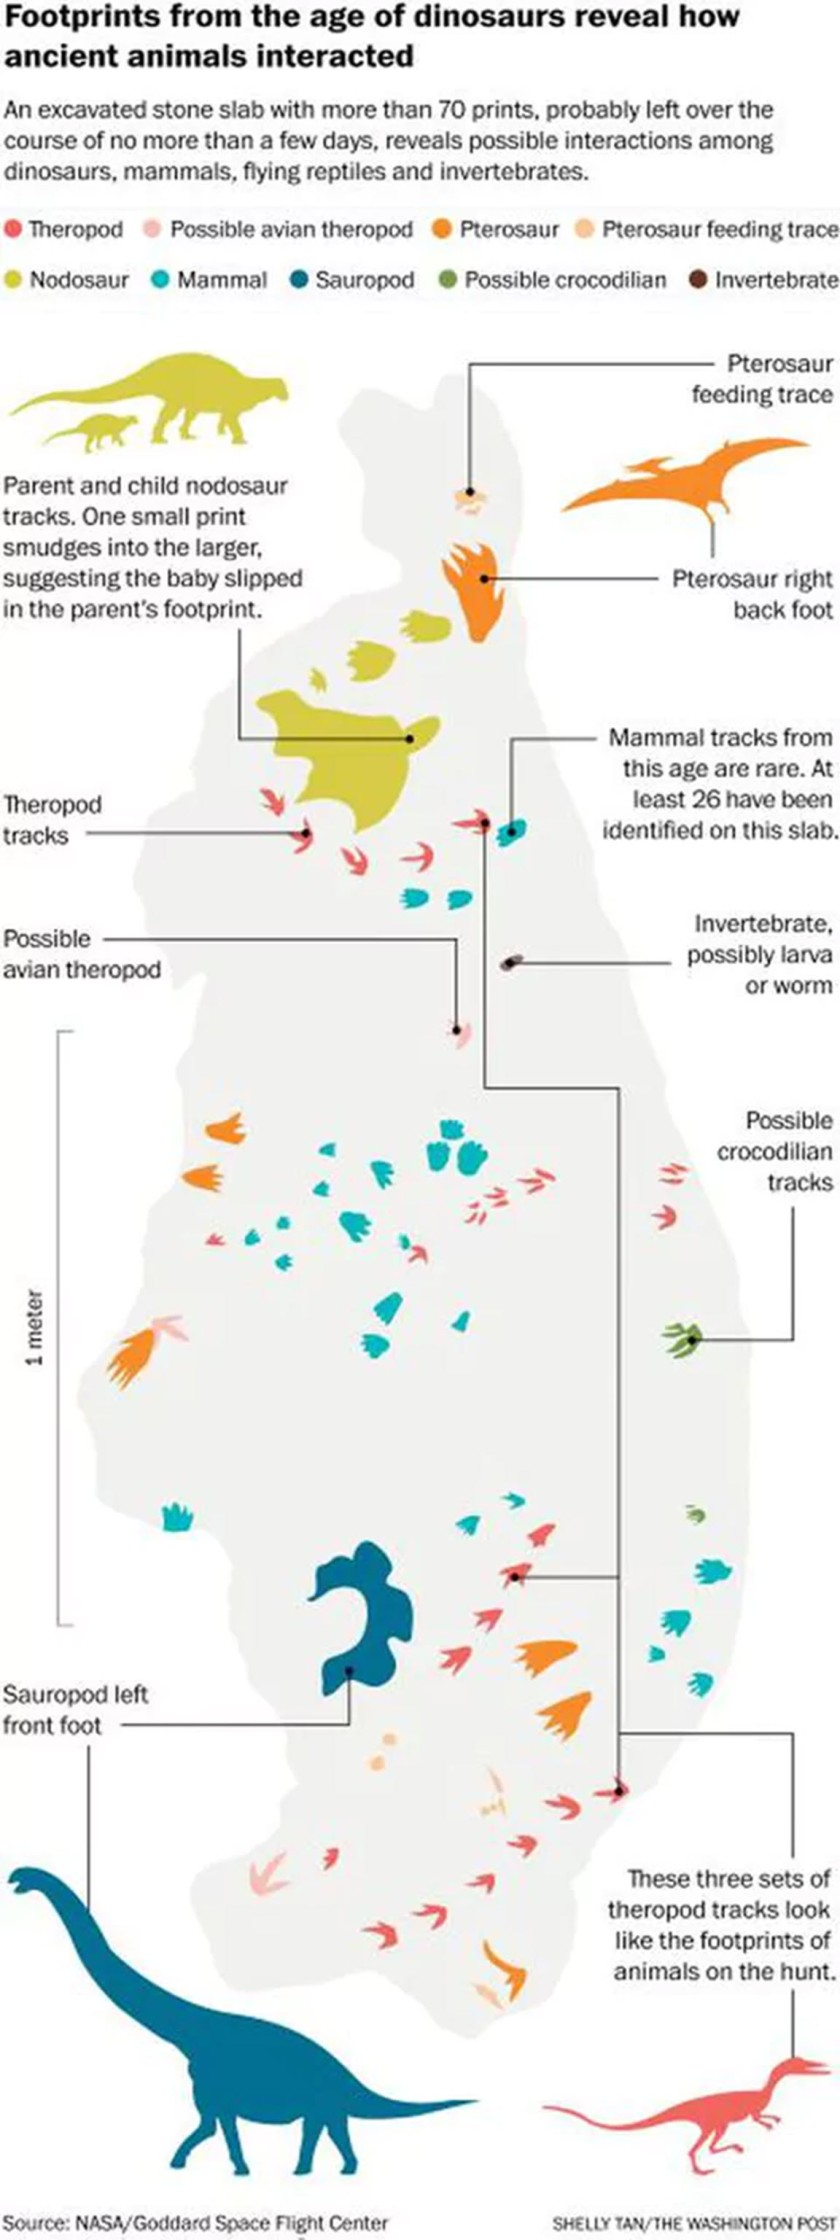 How Dinosaurs interacted with each other